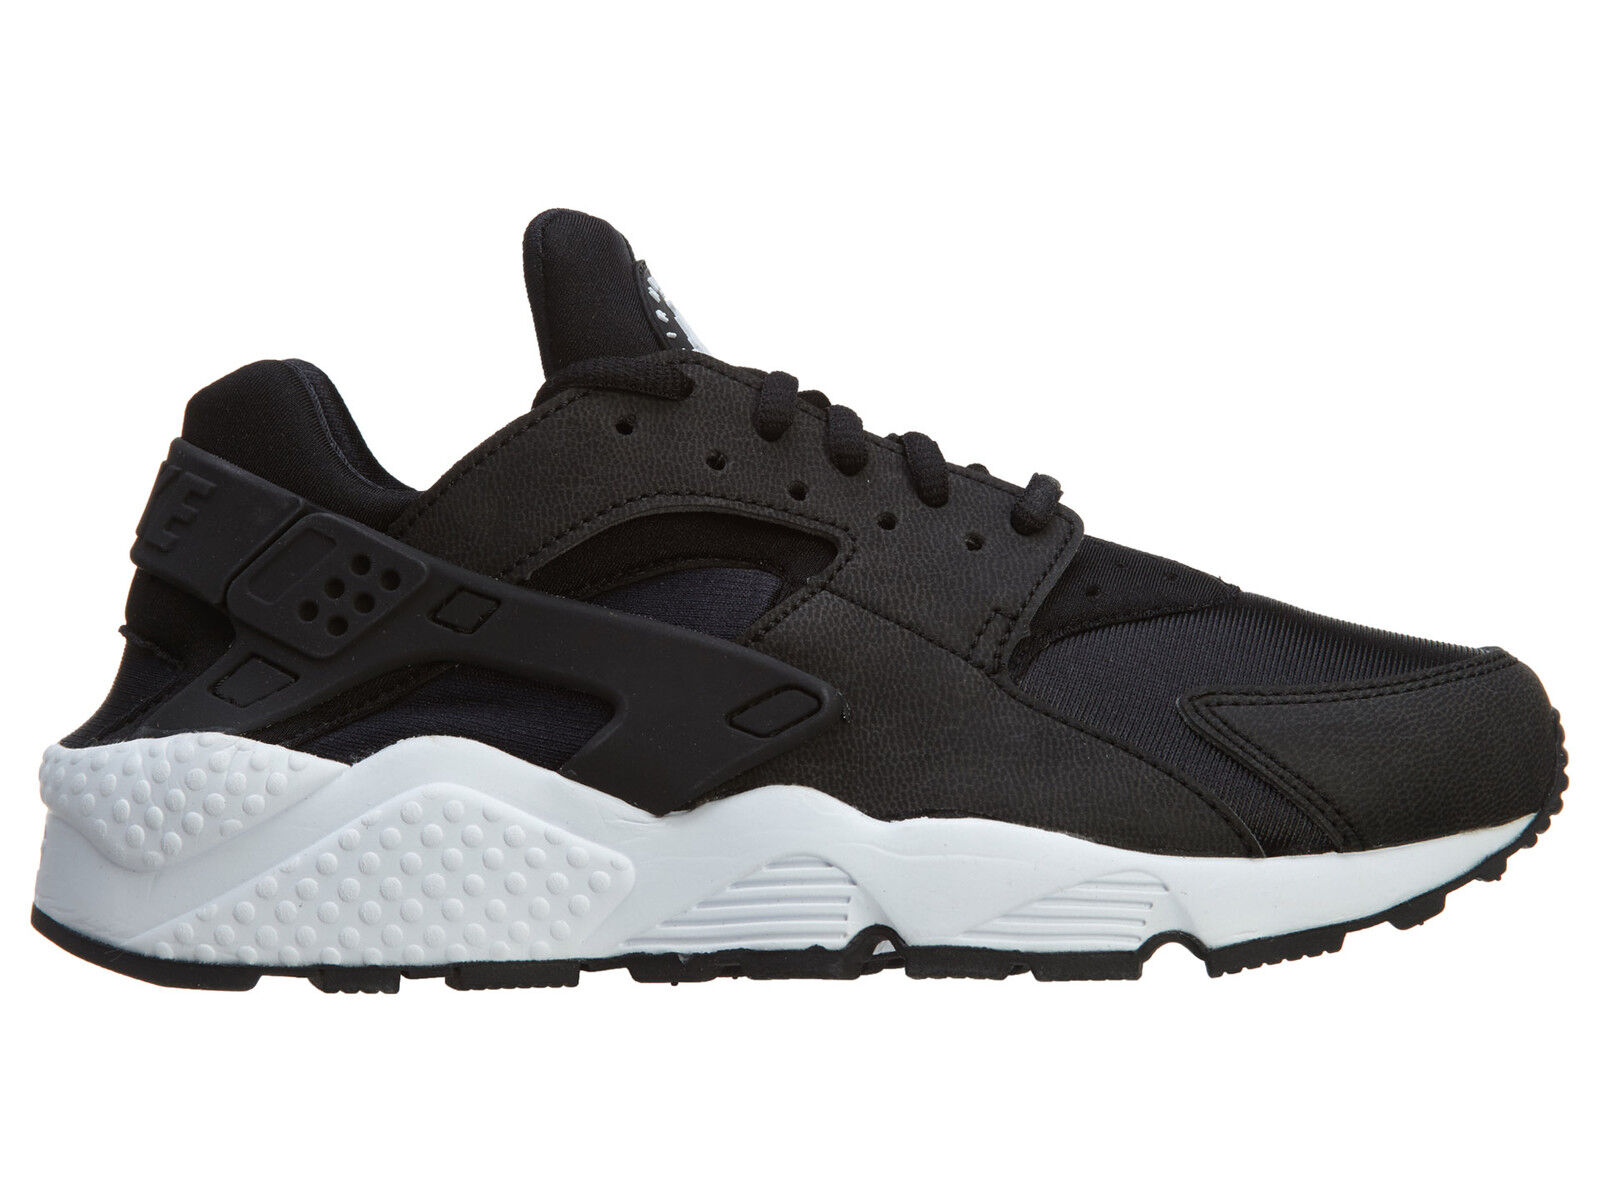 Nike Air Huarache Run Womens 634835-006 Black White 8 Running Shoes Wmns Size 8 White ccd993